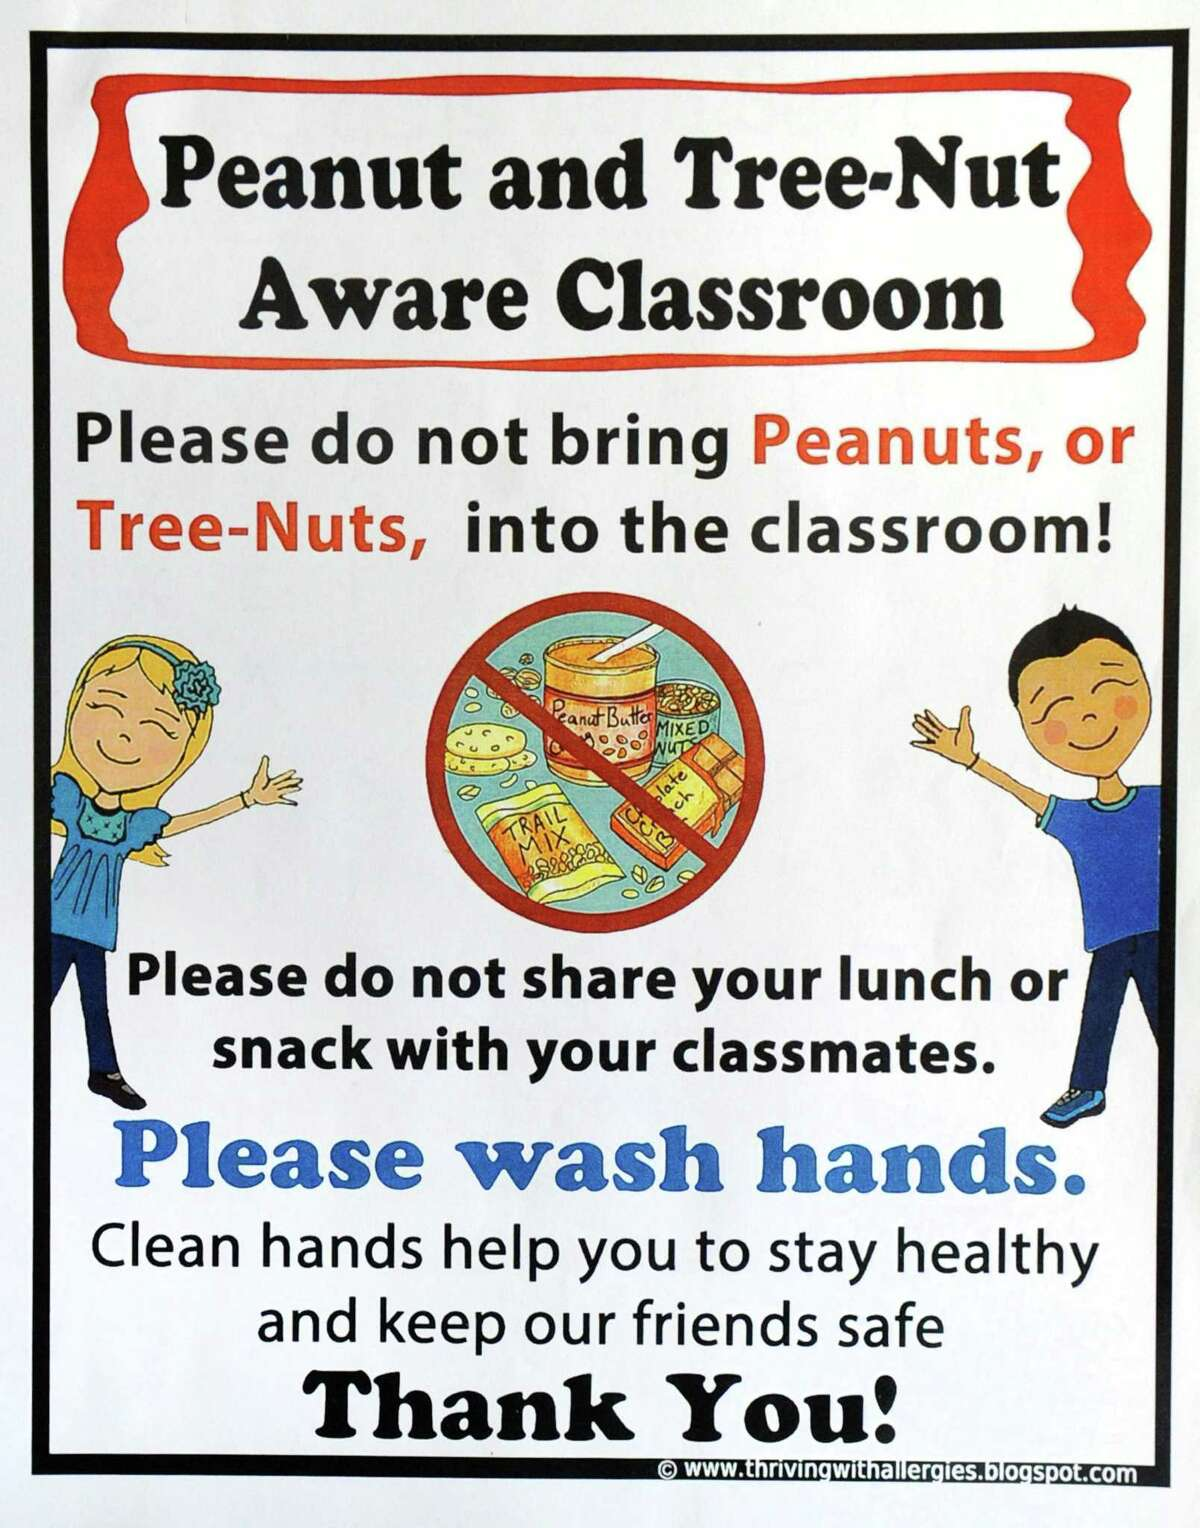 Food allergy awareness literature that has been provided to Greenwich public school officials.